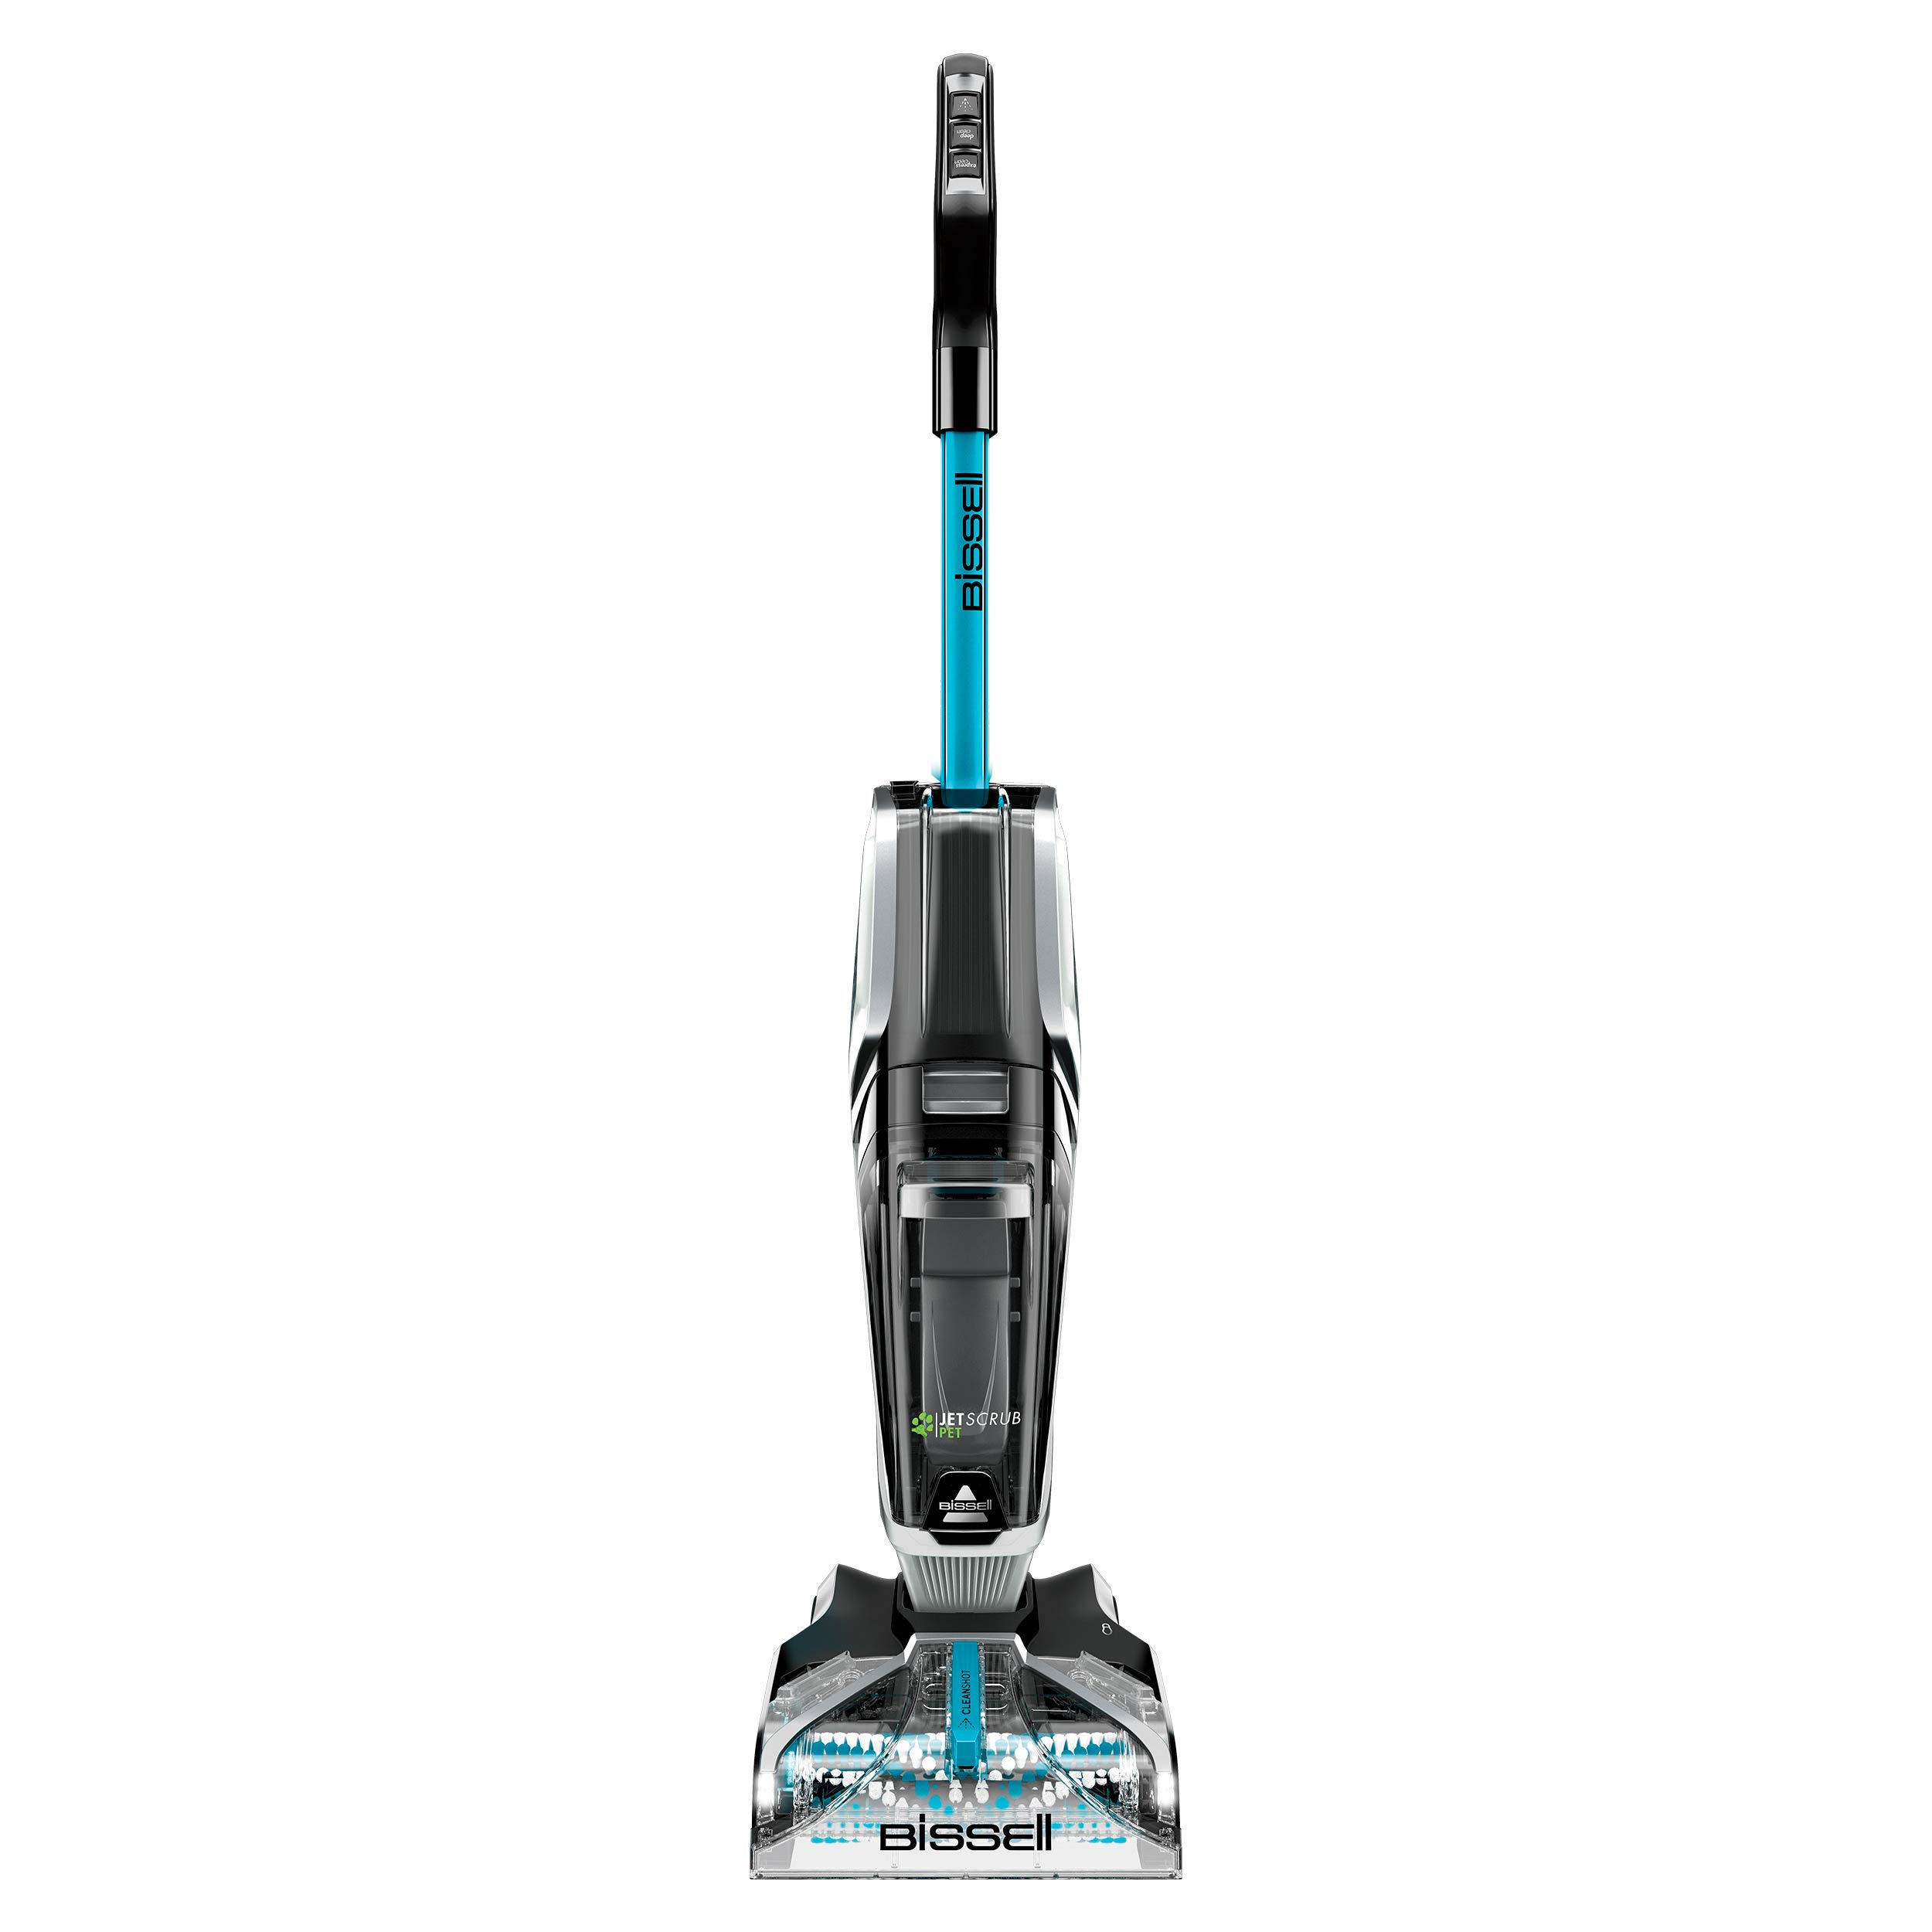 BISSELL JetScrub Pet Upright Carpet Cleaner, 25299 by Bissell